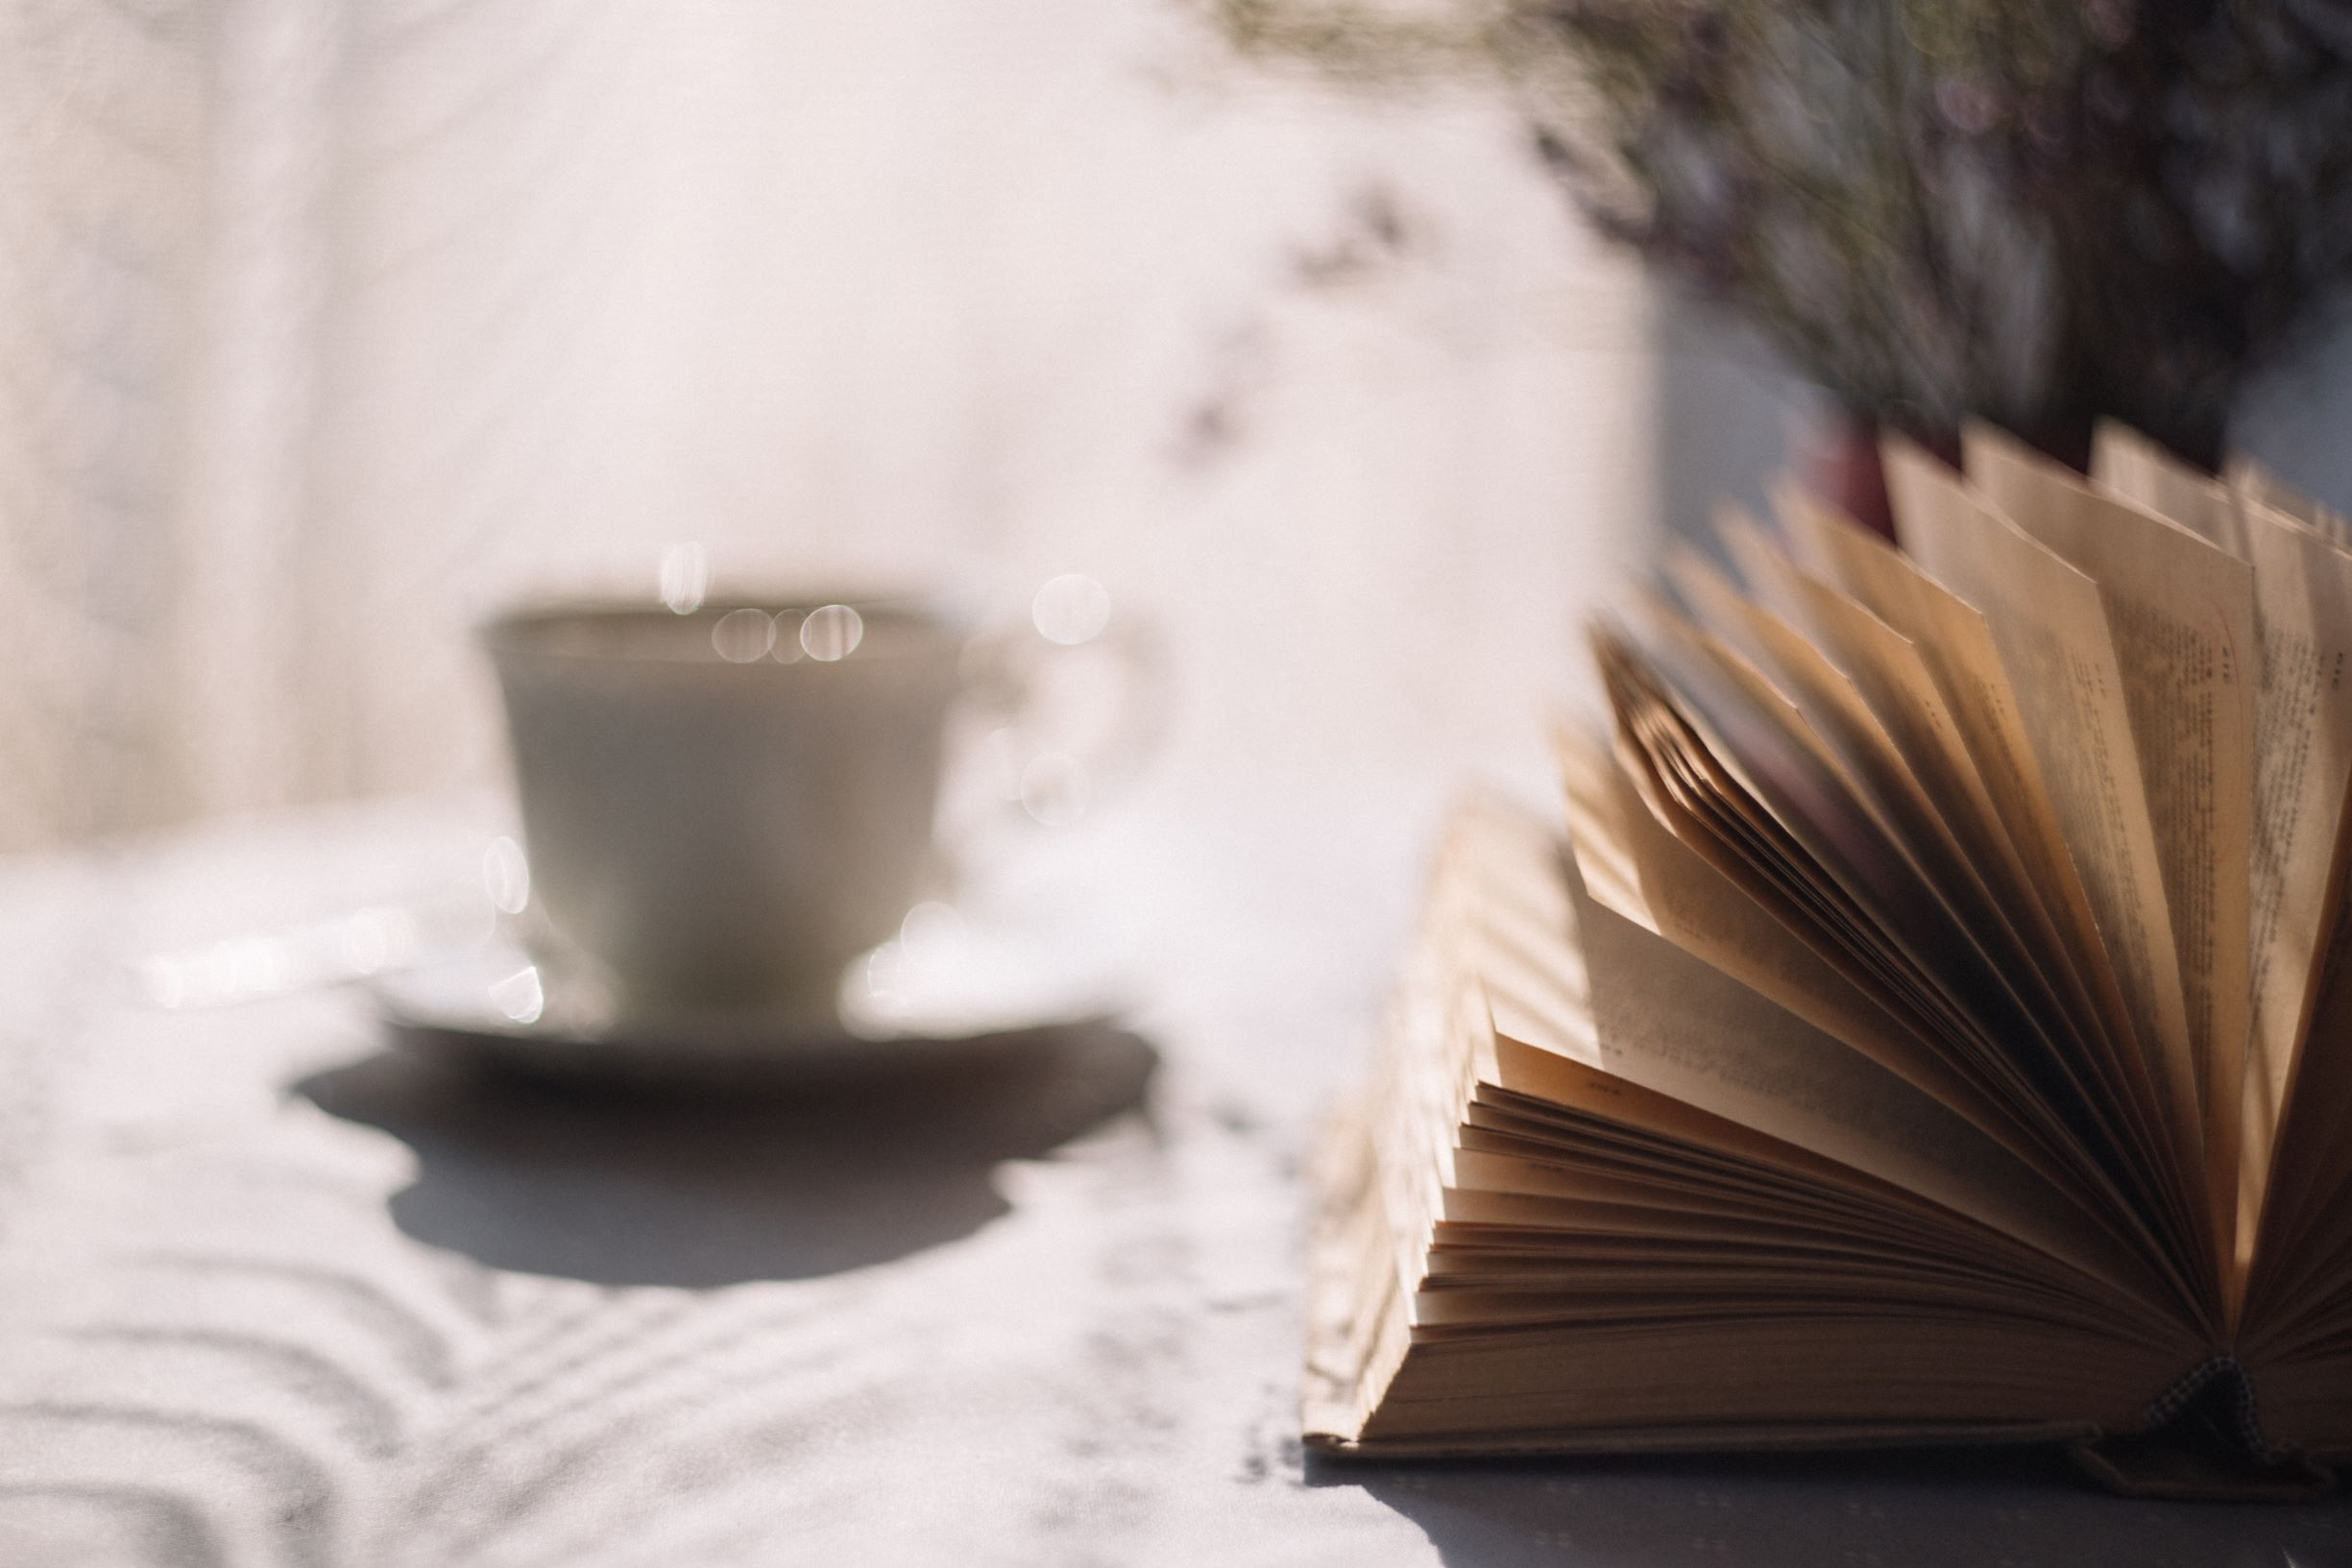 Novels and Warm Drinks